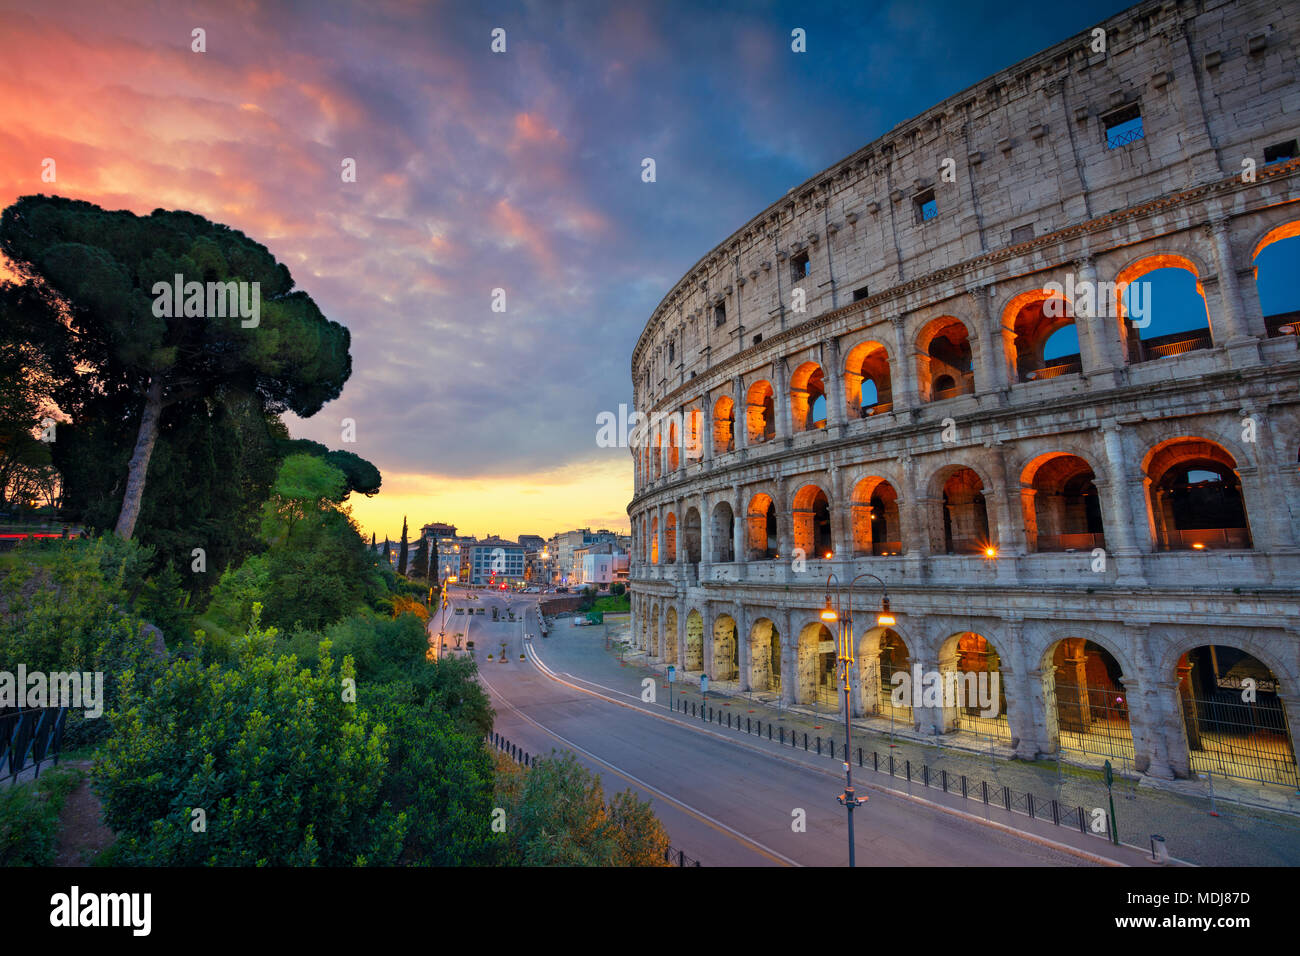 Colosseum. Image of famous Colosseum in Rome, Italy during beautiful sunrise. - Stock Image